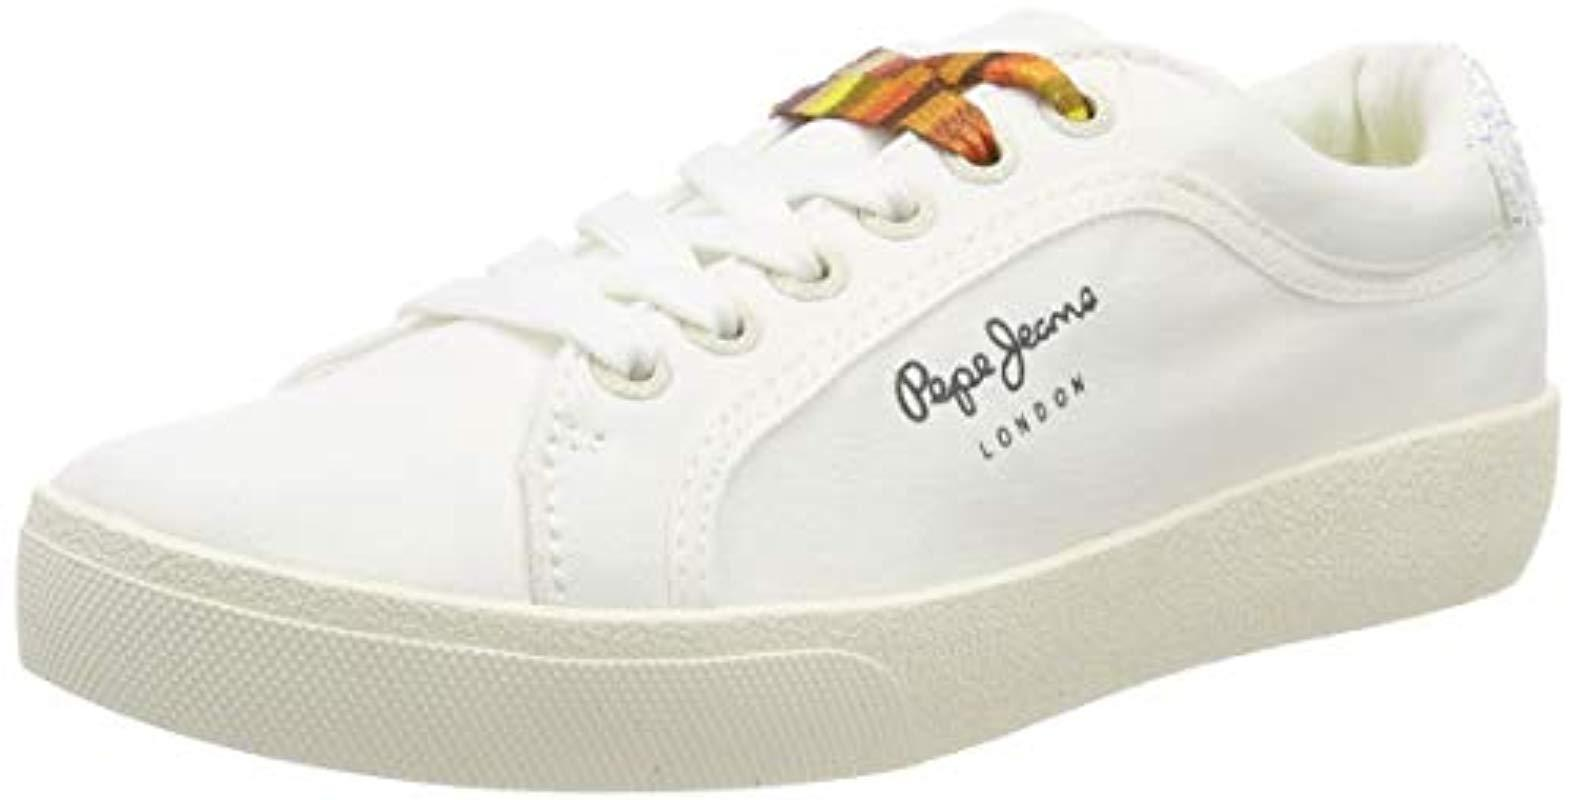 6e088cd9f99 Pepe Jeans Rene Surf Trainers in White - Lyst